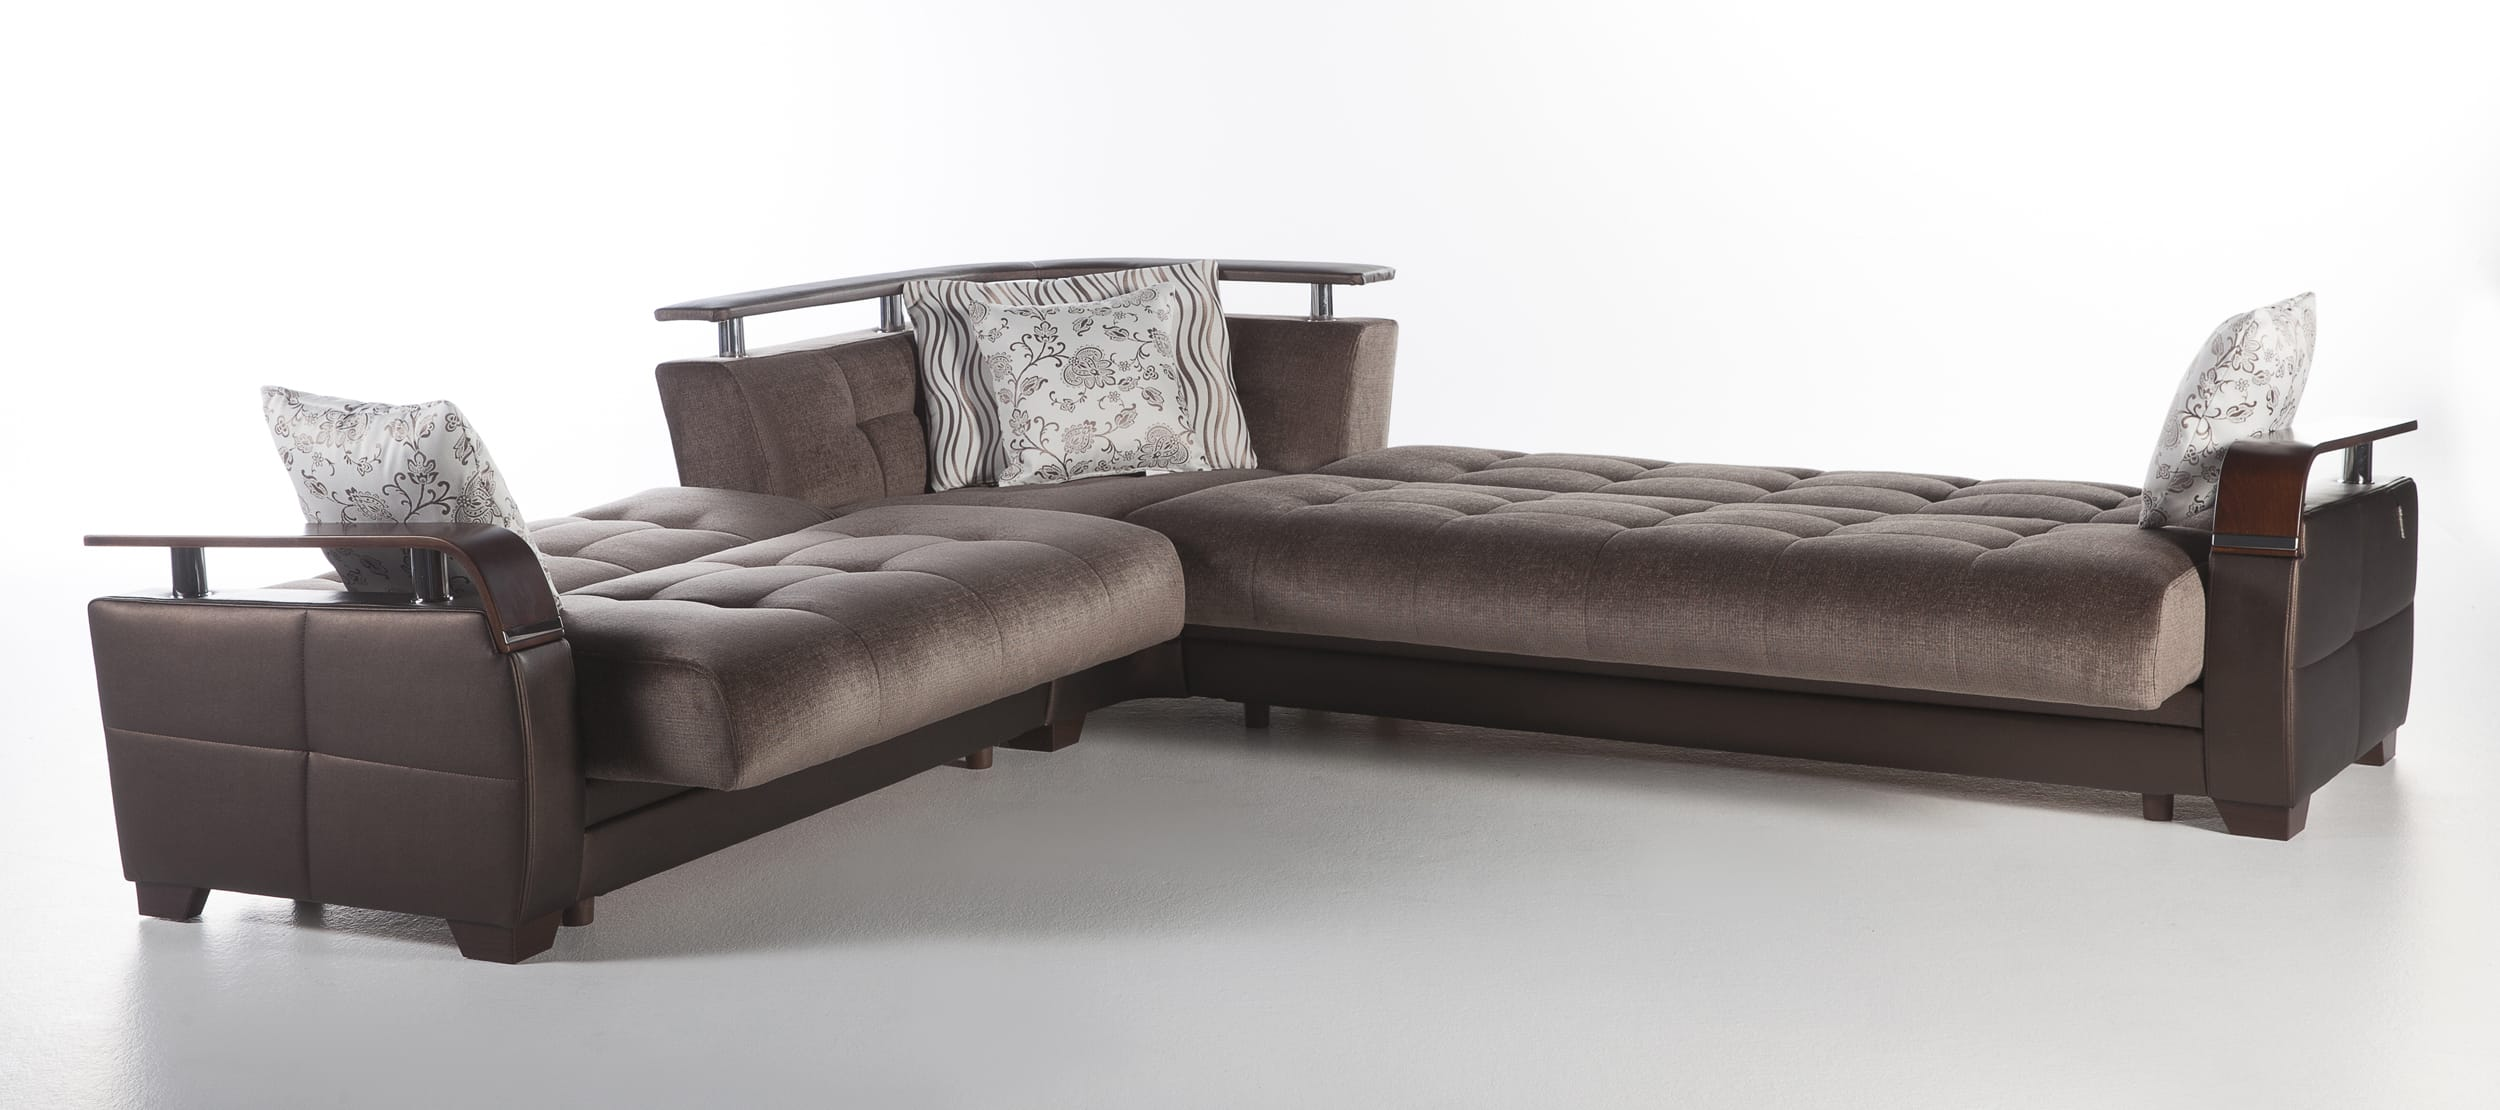 Natural Prestige Brown Sectional Sofa by Sunset